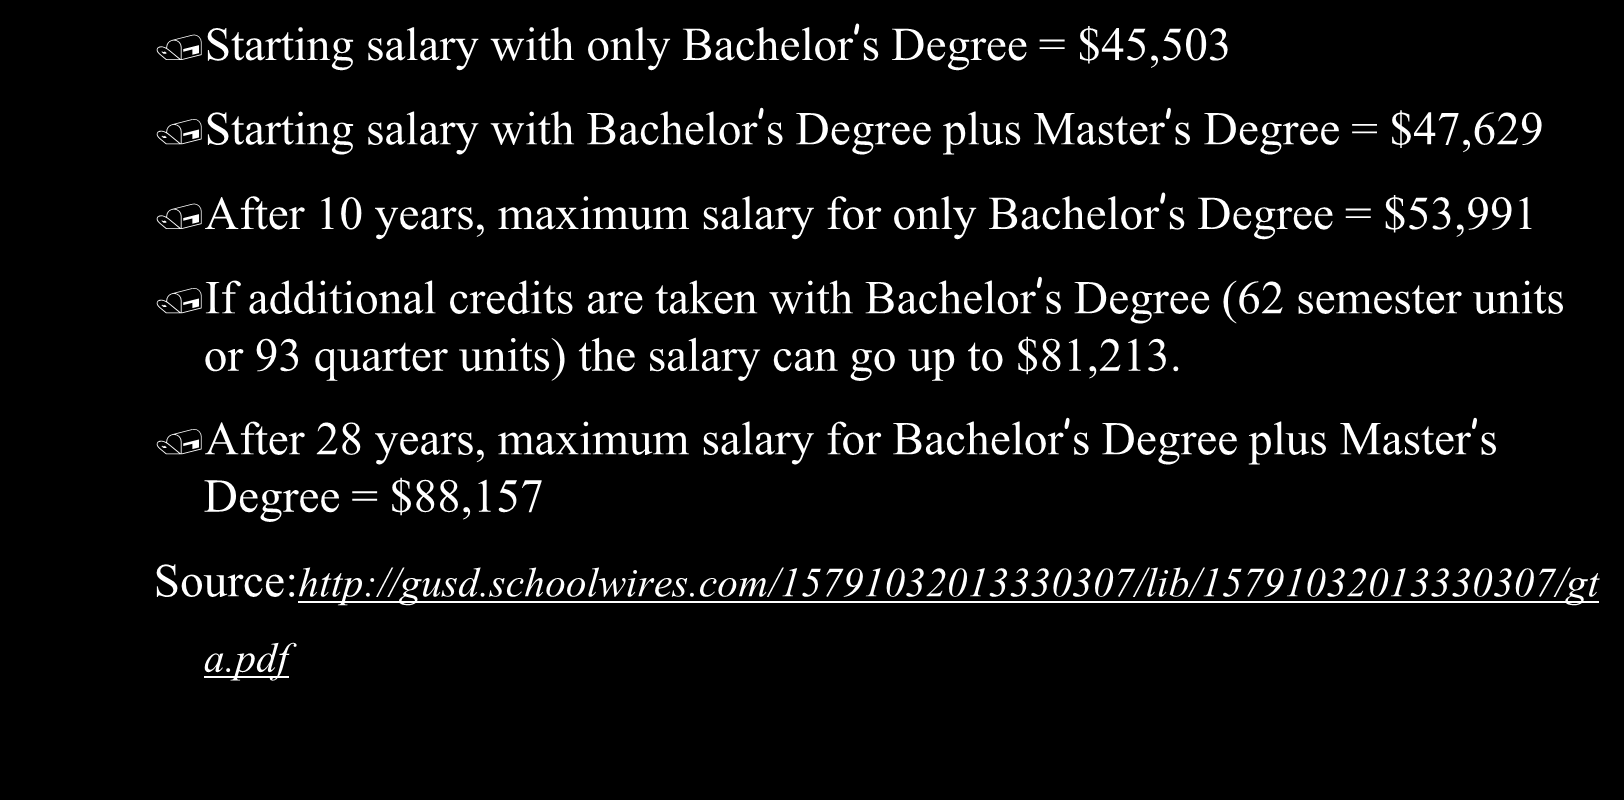 Should I do Continuing Education after having a Bachelor's degree?